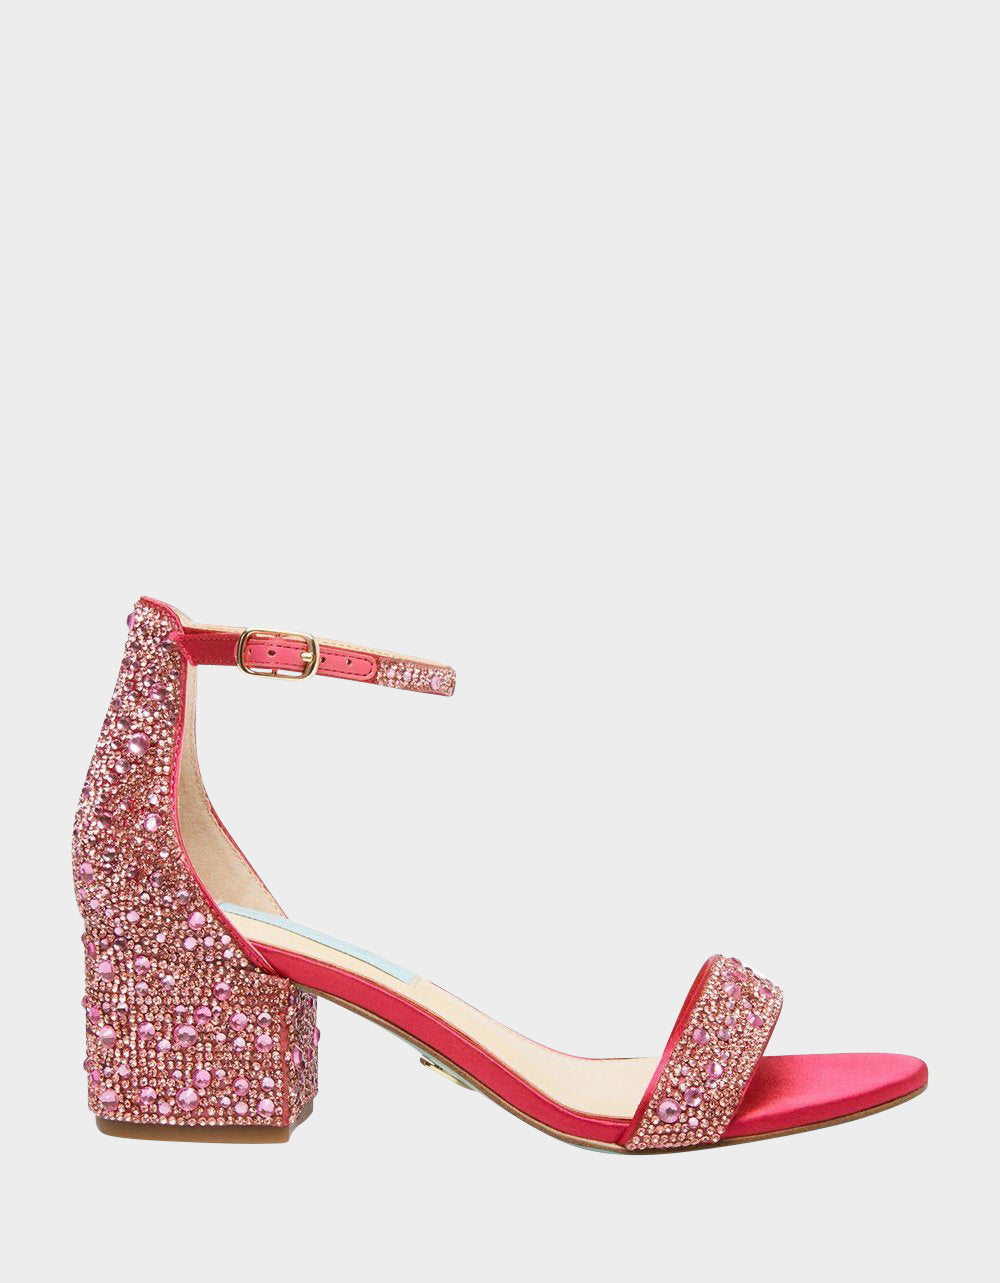 SB-MARI FUSCHIA FABRIC - SHOES - Betsey Johnson